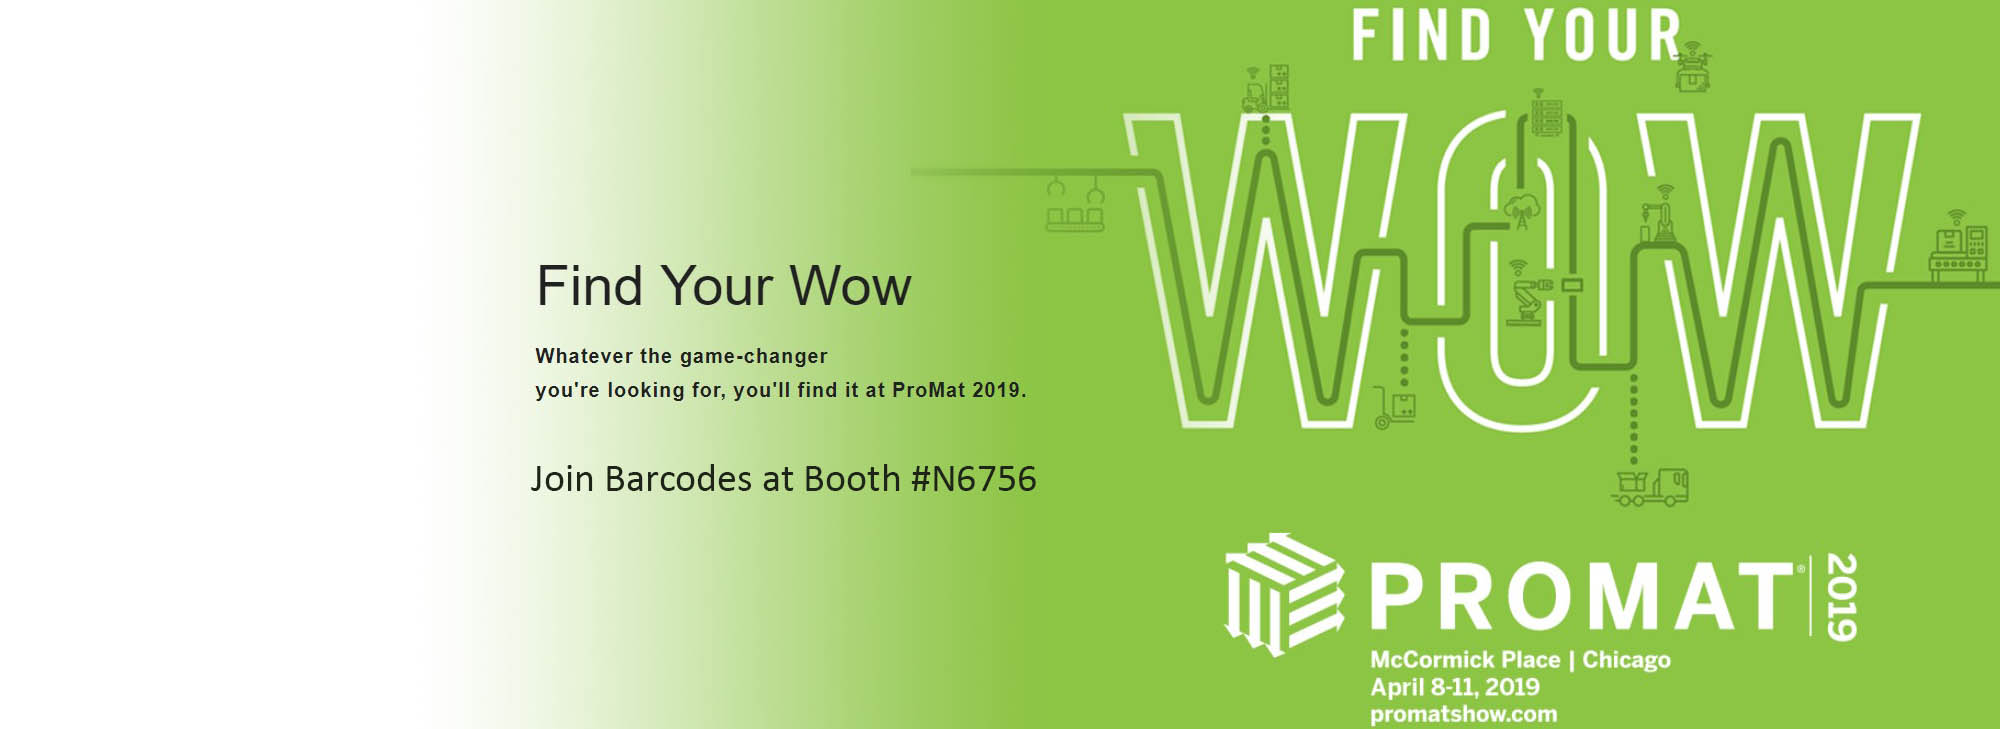 Promat 2019 Join Barcodes at Booth N6756 and learn more about how to automate your warehouse supply chain..